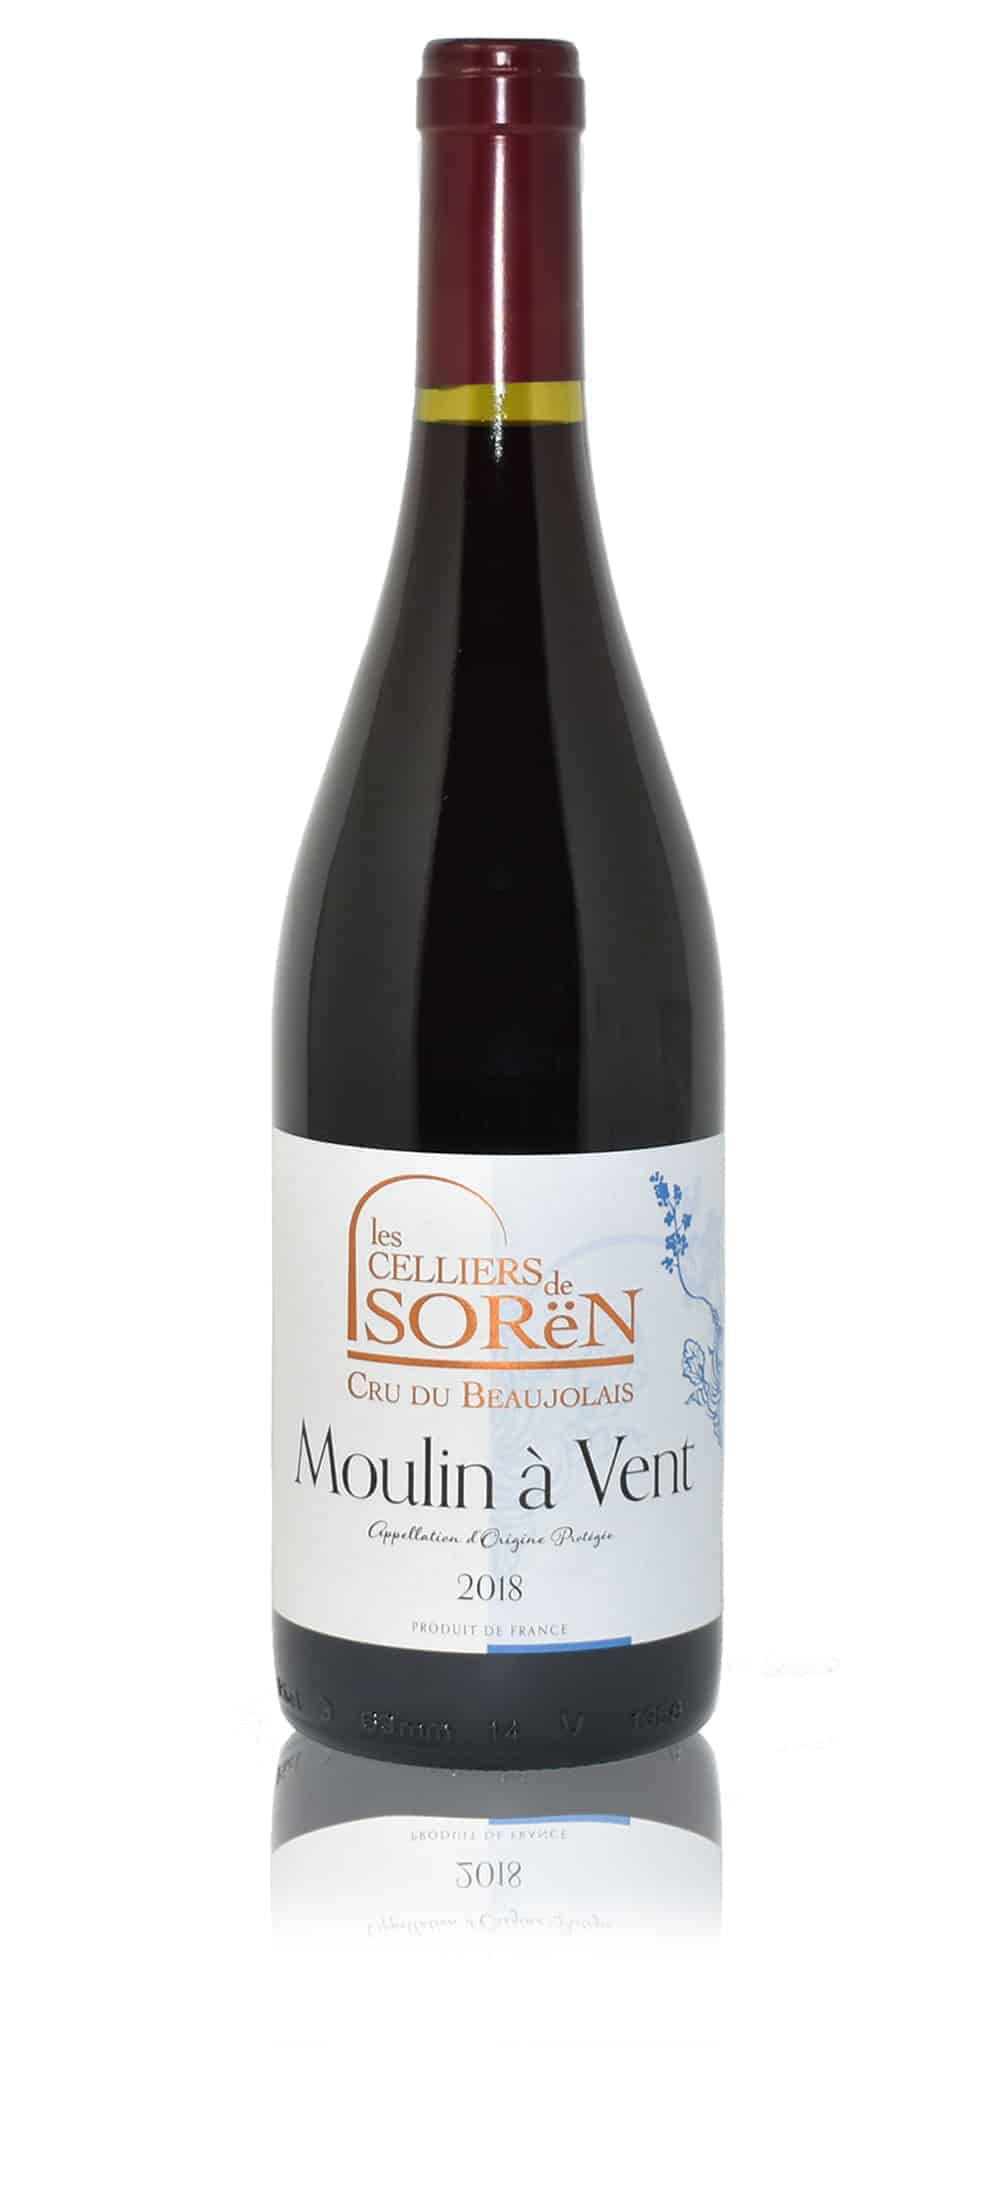 An image of Les Celliers de Sorën Moulin à Vent wine from Beaujolais